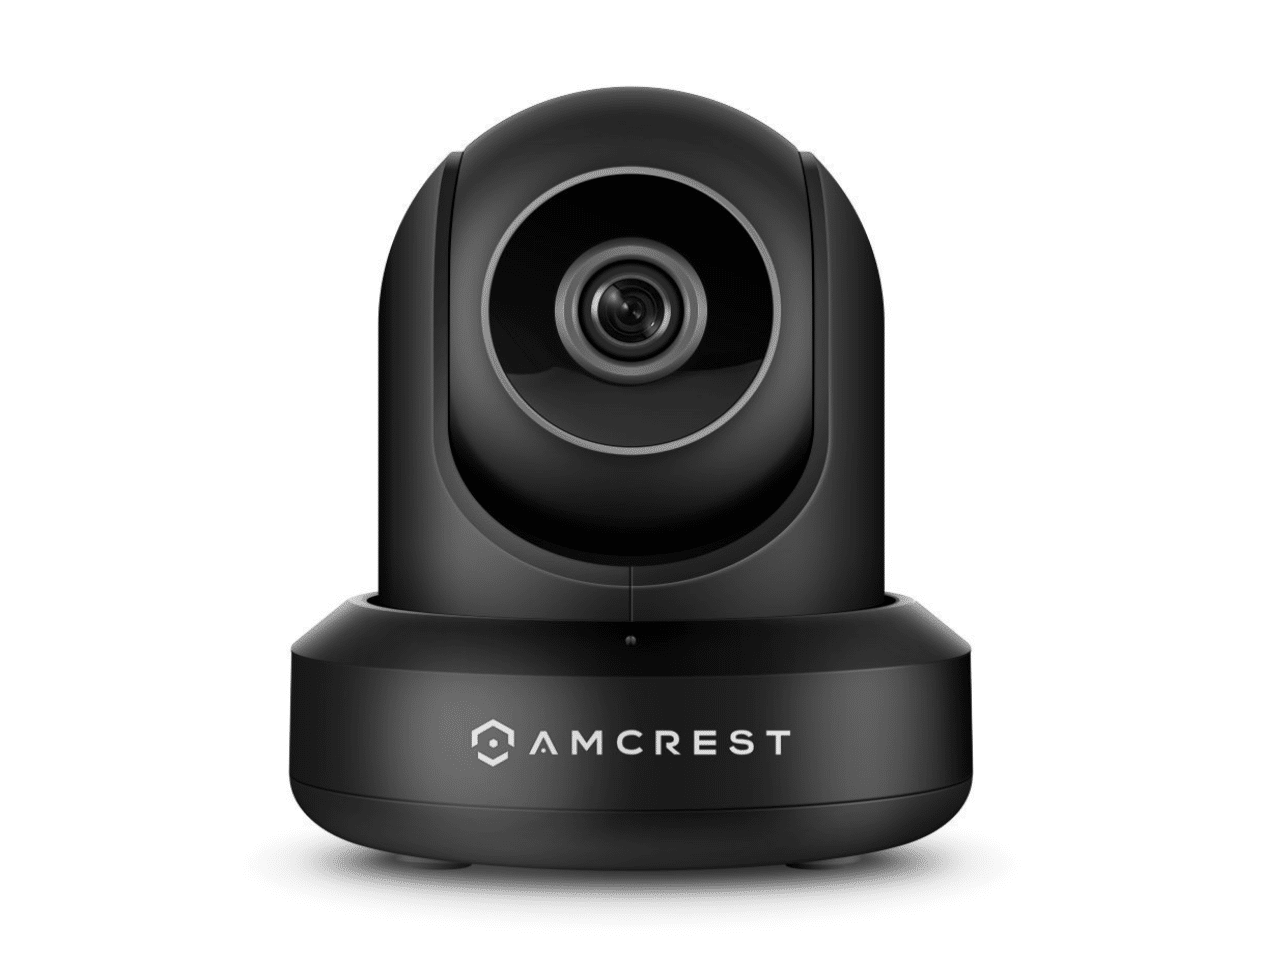 Amcrest coupon code